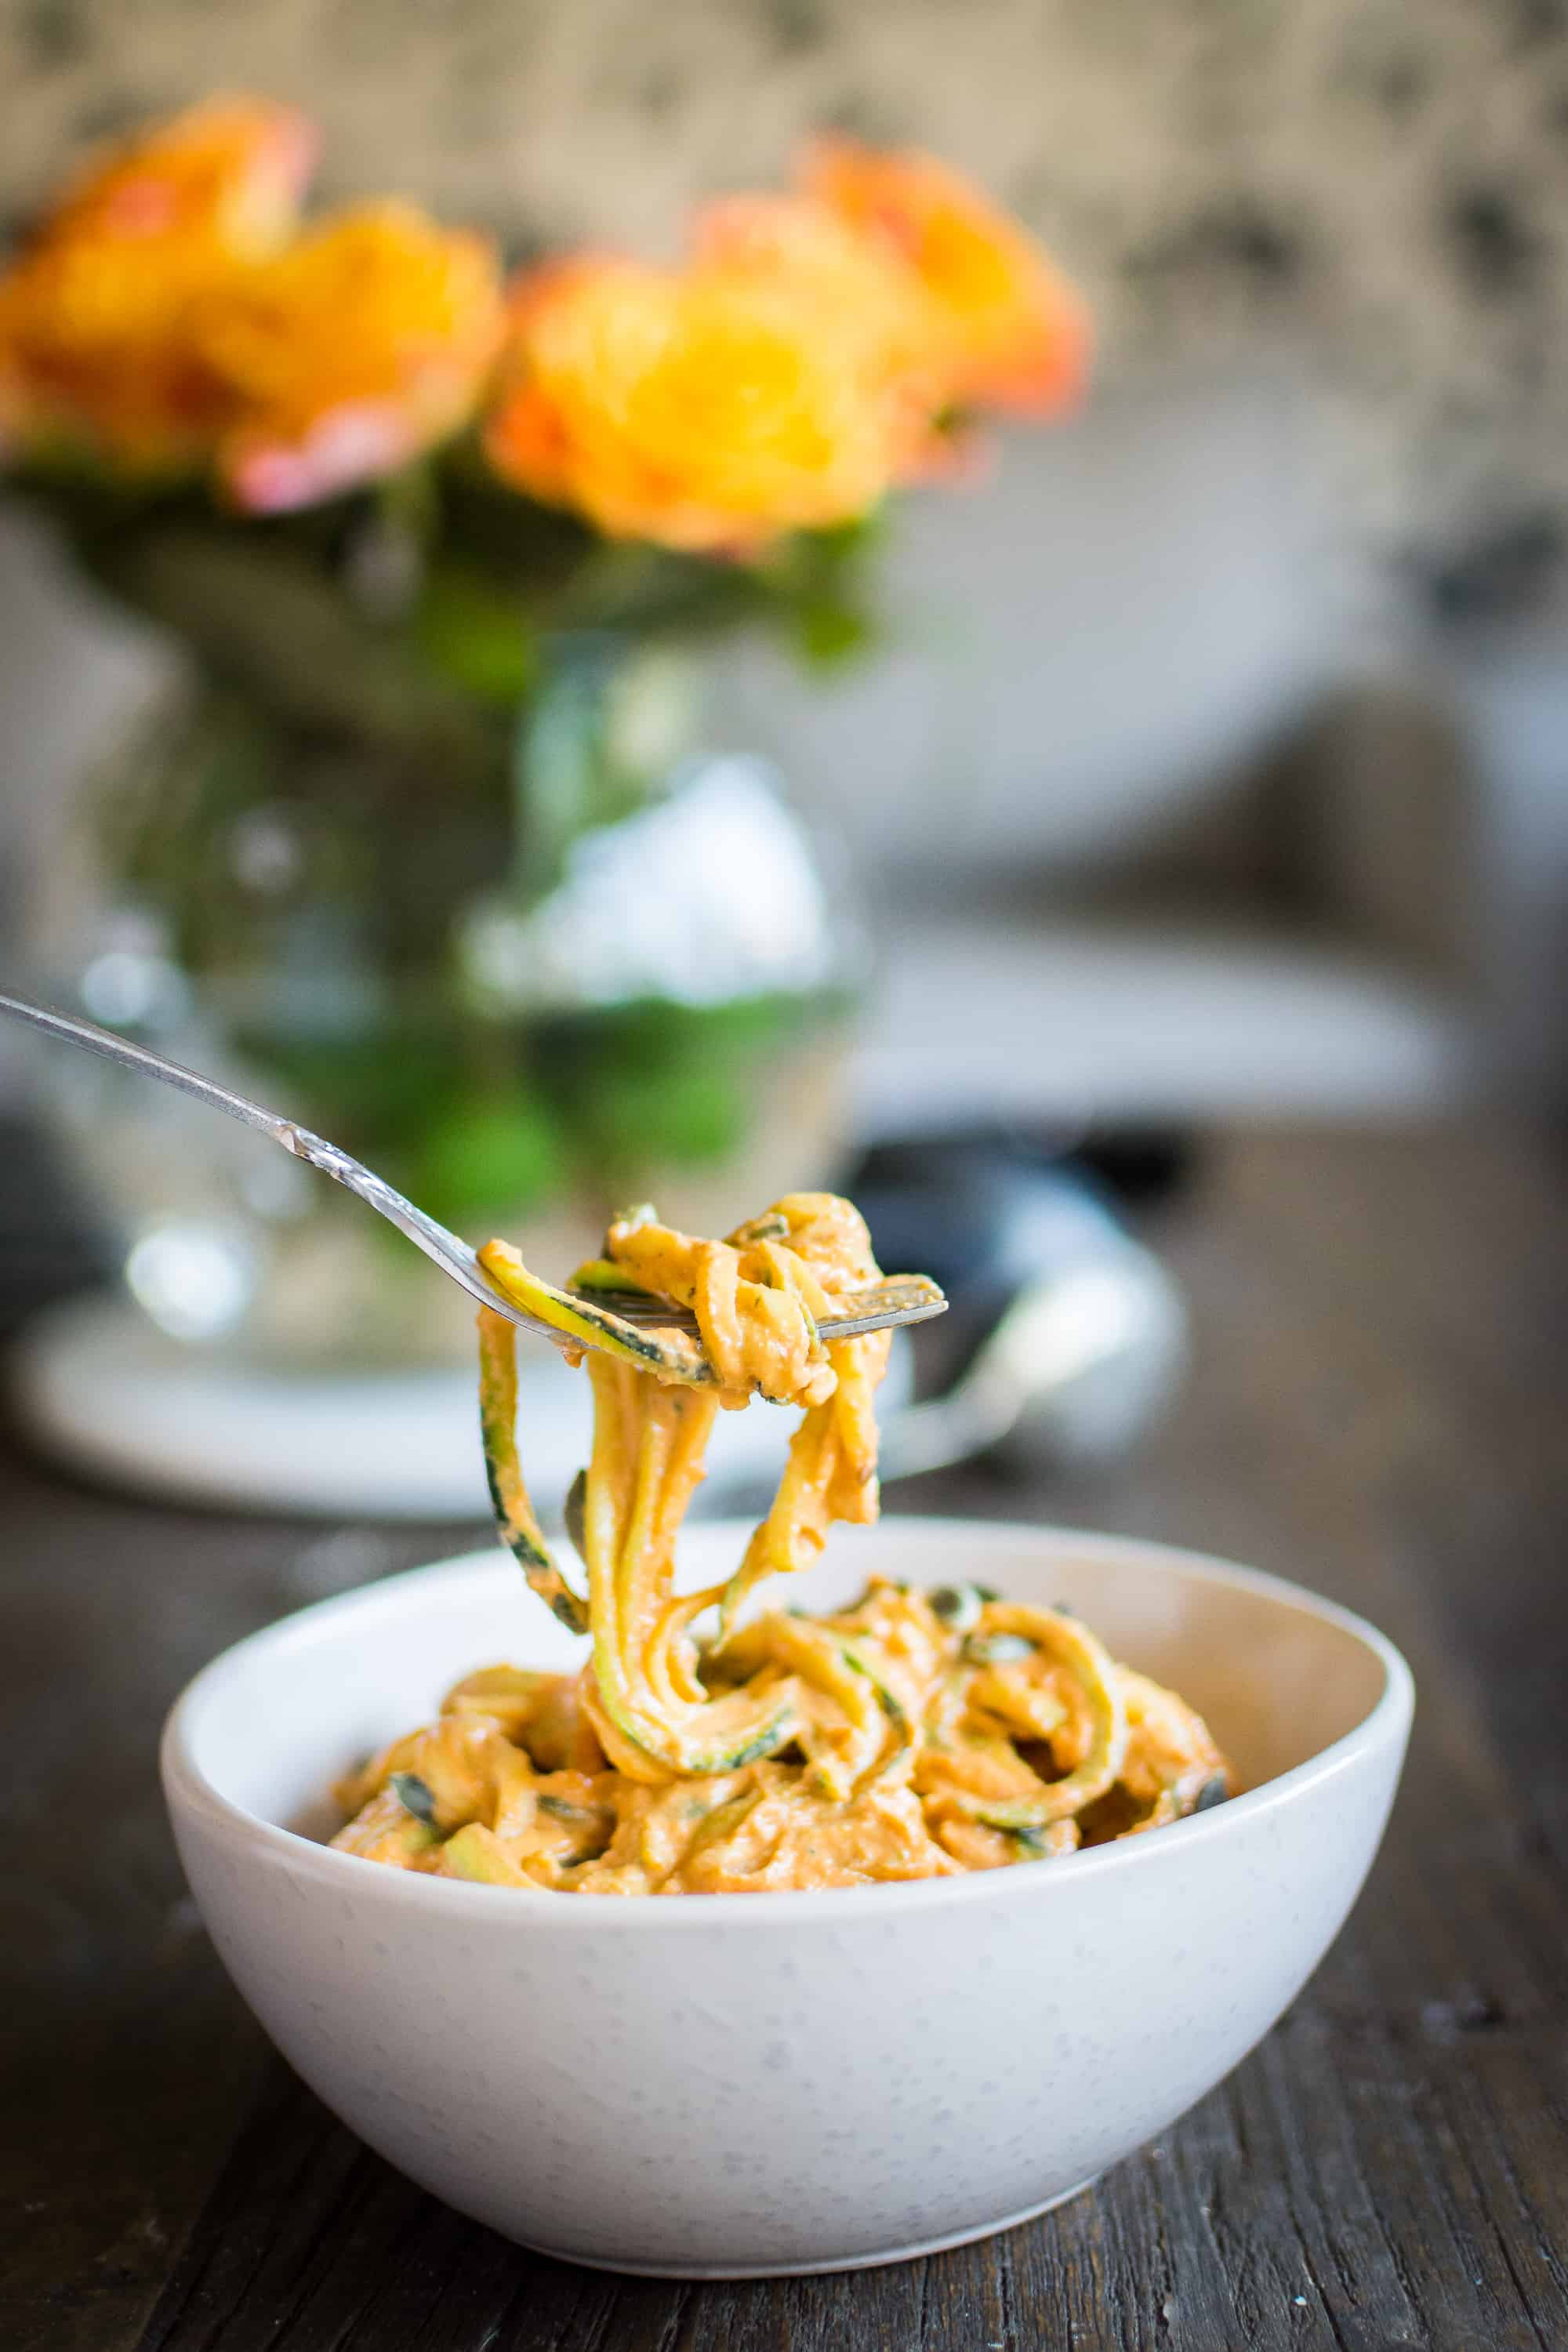 Zucchini pasta with creamy cashew bell pepper sauce, a dish that is perfect on a warm summer day like this. It is easy and quick to prepare, and it's not too heavy. If you don't like zucchini pasta you can substitute with wheat spaghetti or other pasta. To make zucchini noodles you'll need a tool called spiralizer. You can buy a handheld spiralizer<a target=